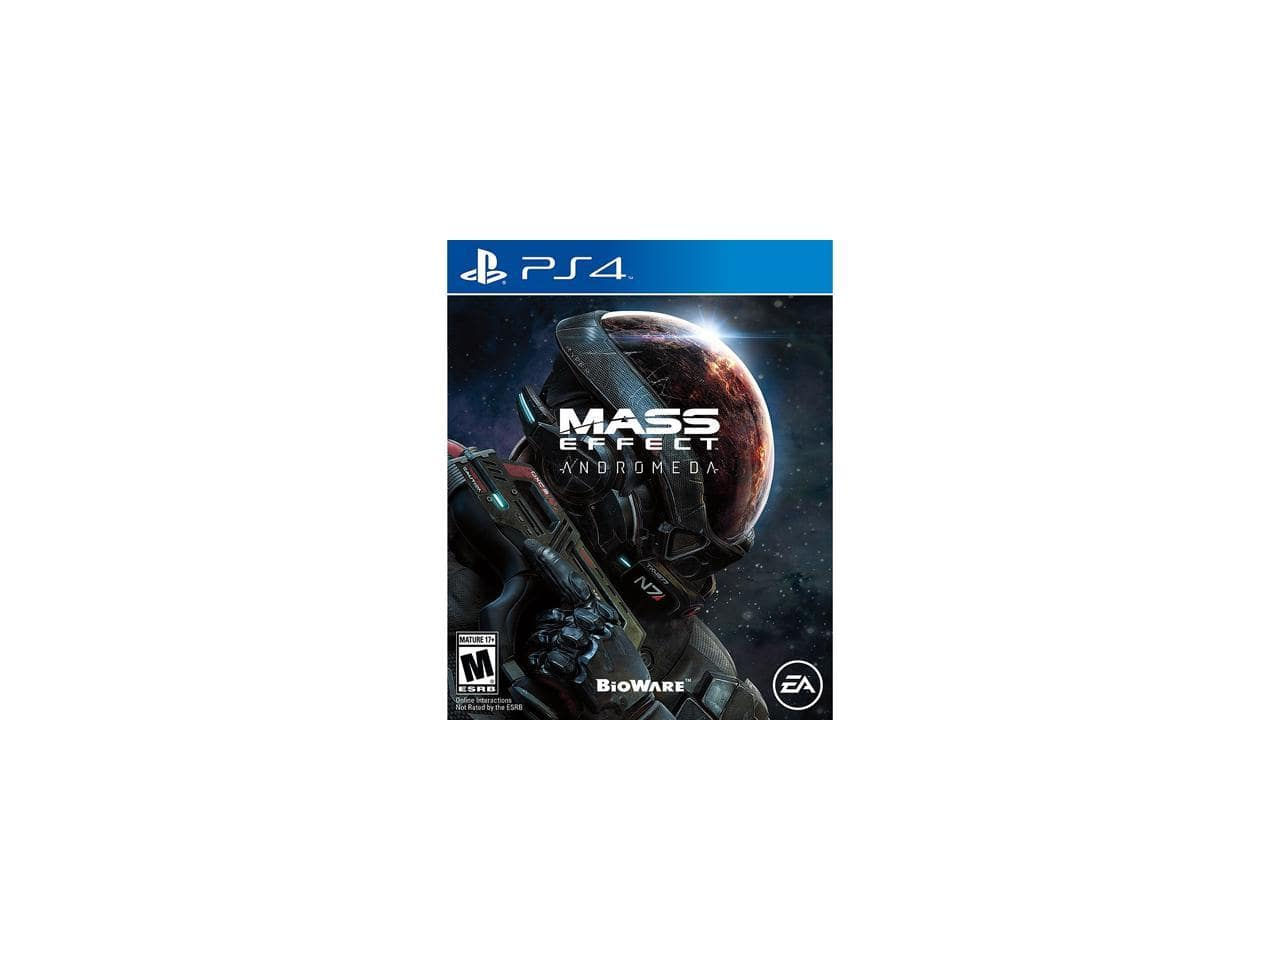 Mass Effect Andromeda (PS4 or Xbox One) + Assassin's Creed Syndicate (PC) for $4.99 AR + S&H @ Newegg